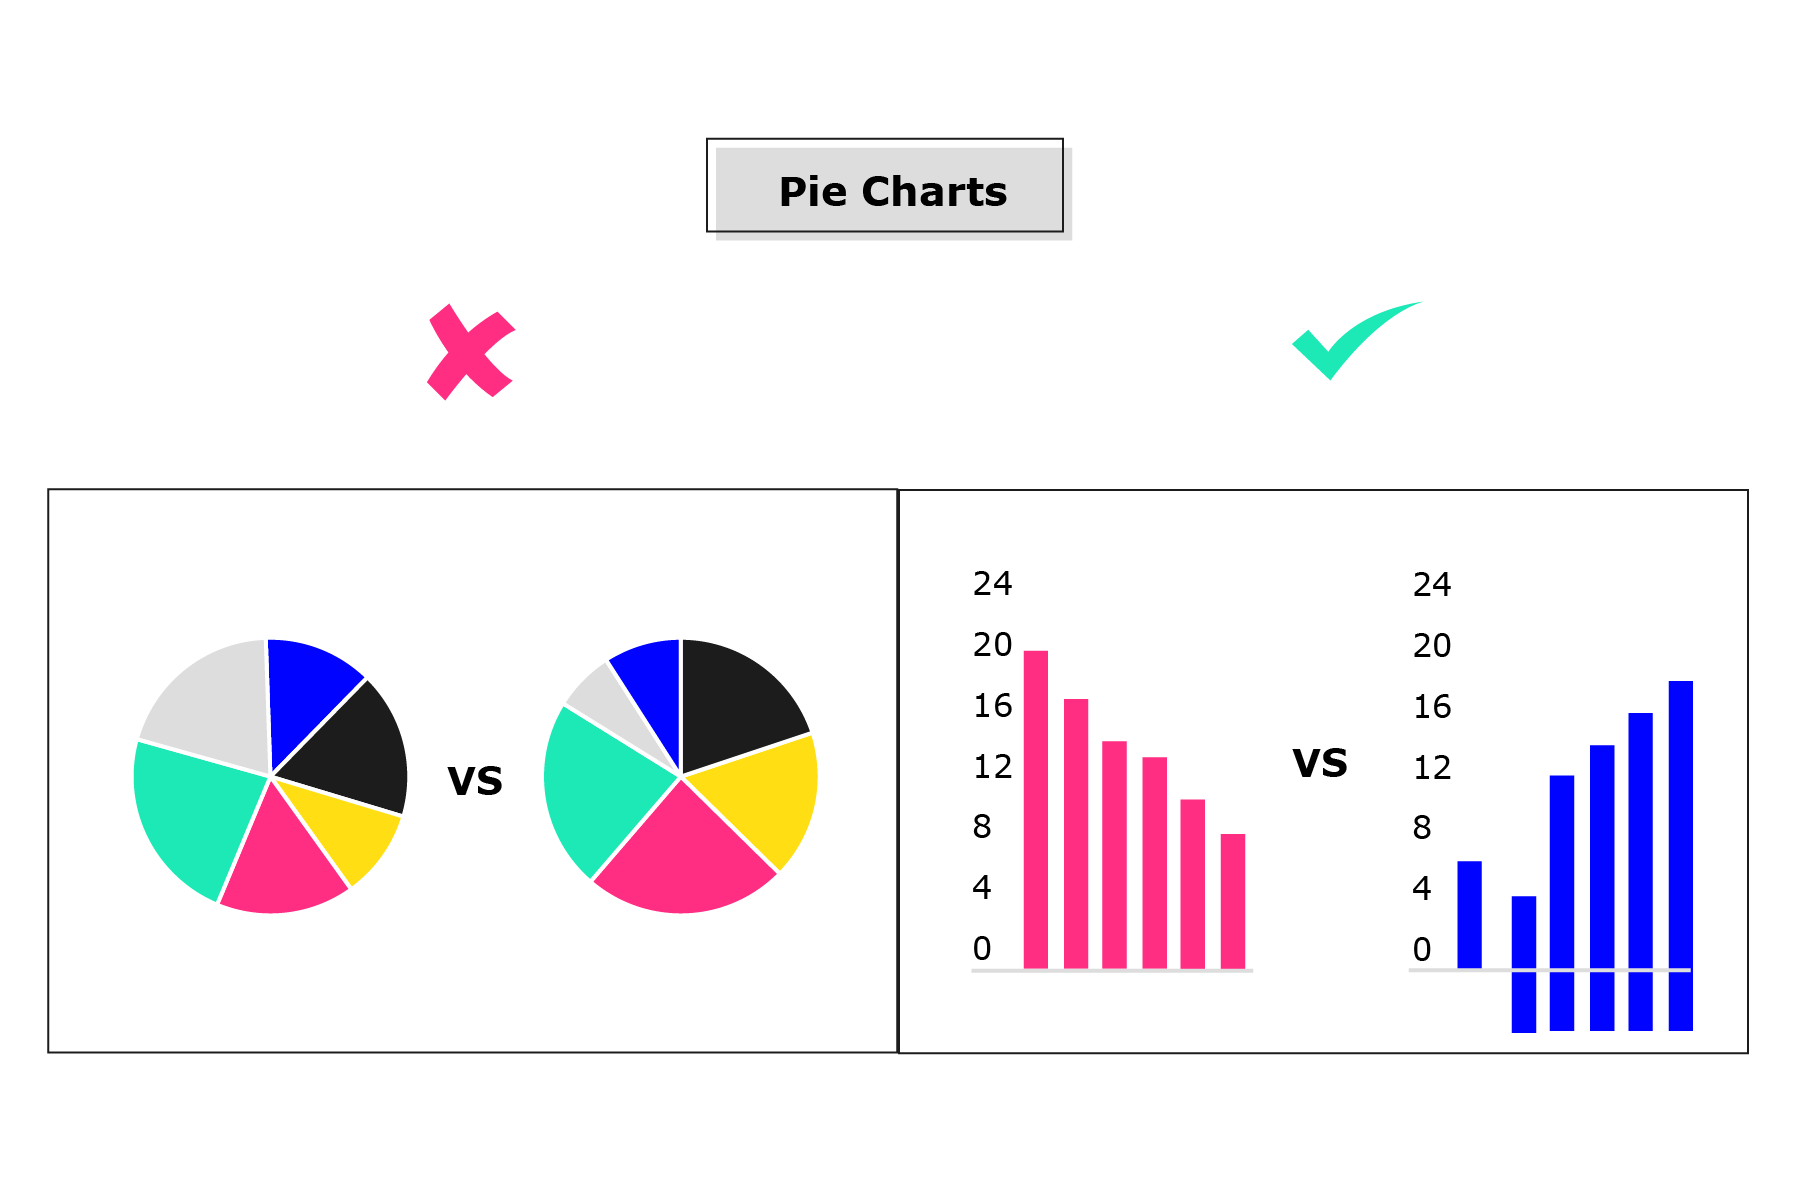 Example of a correct and incorrect pie chart. The incorrect version has two pie charts that are meant to show a comparison. The correct version has two bar charts showing the same information more effectively.